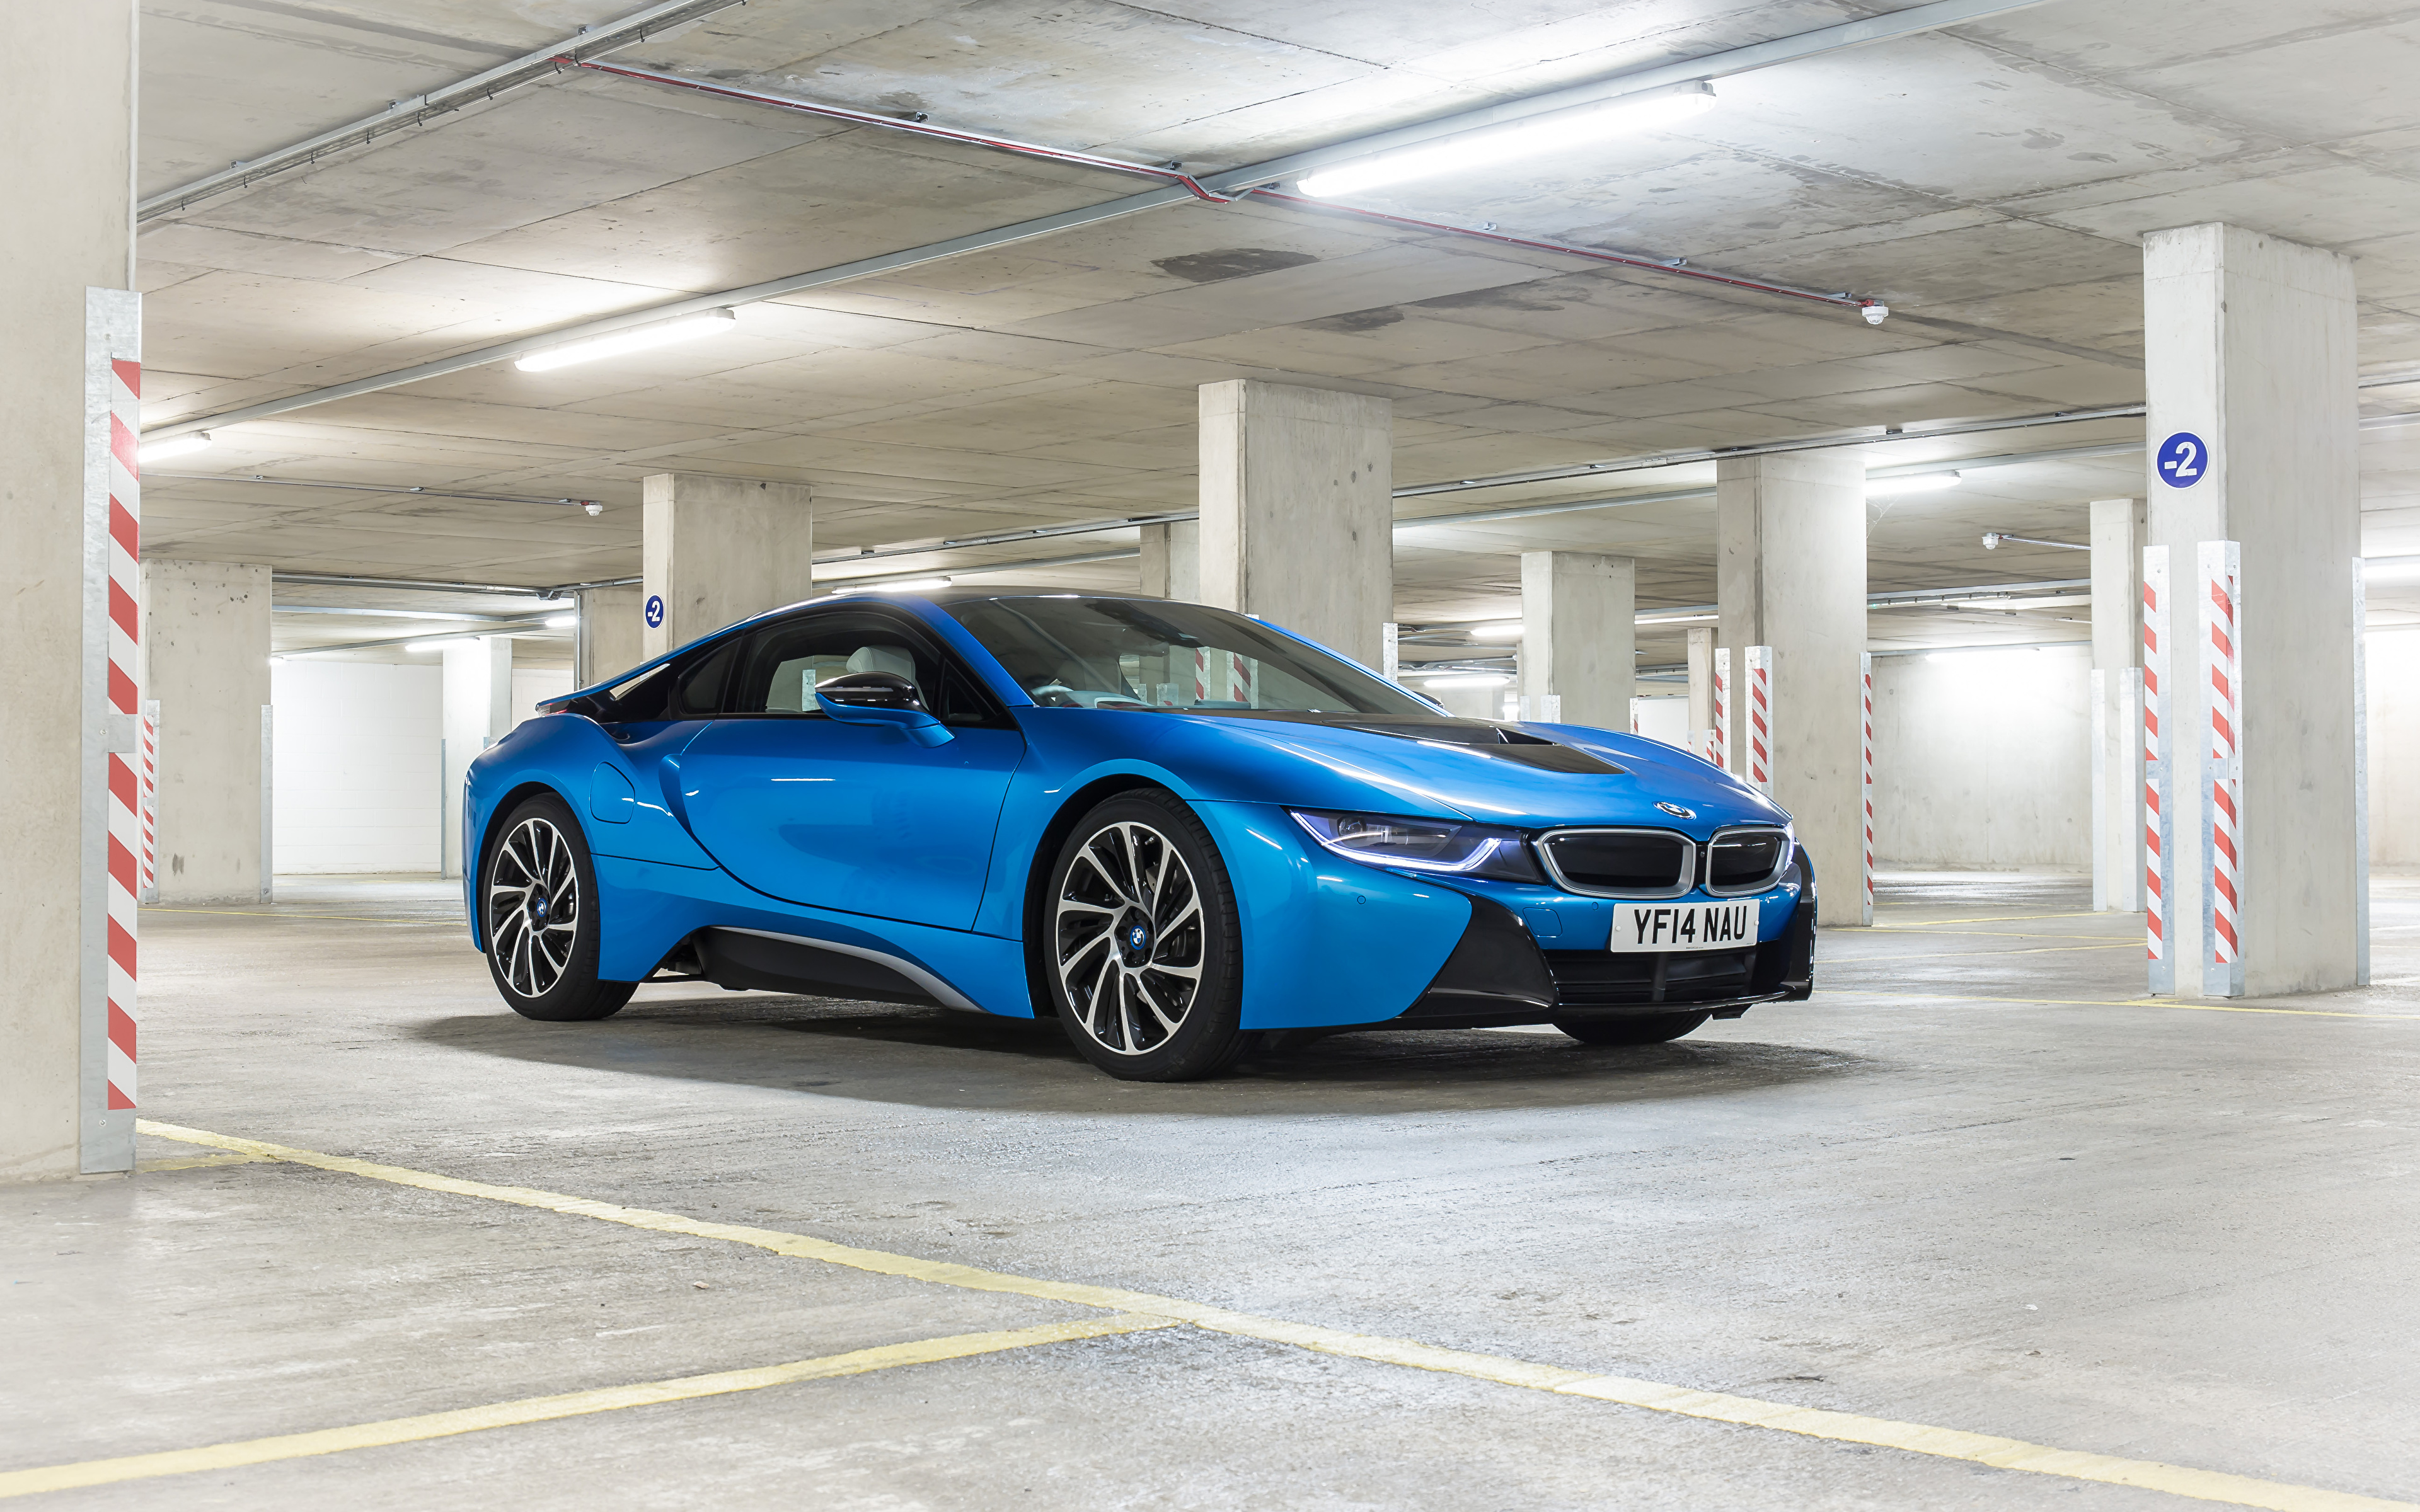 Pictures BMW 2014 i8 Light Blue automobile 3840x2400 Cars auto